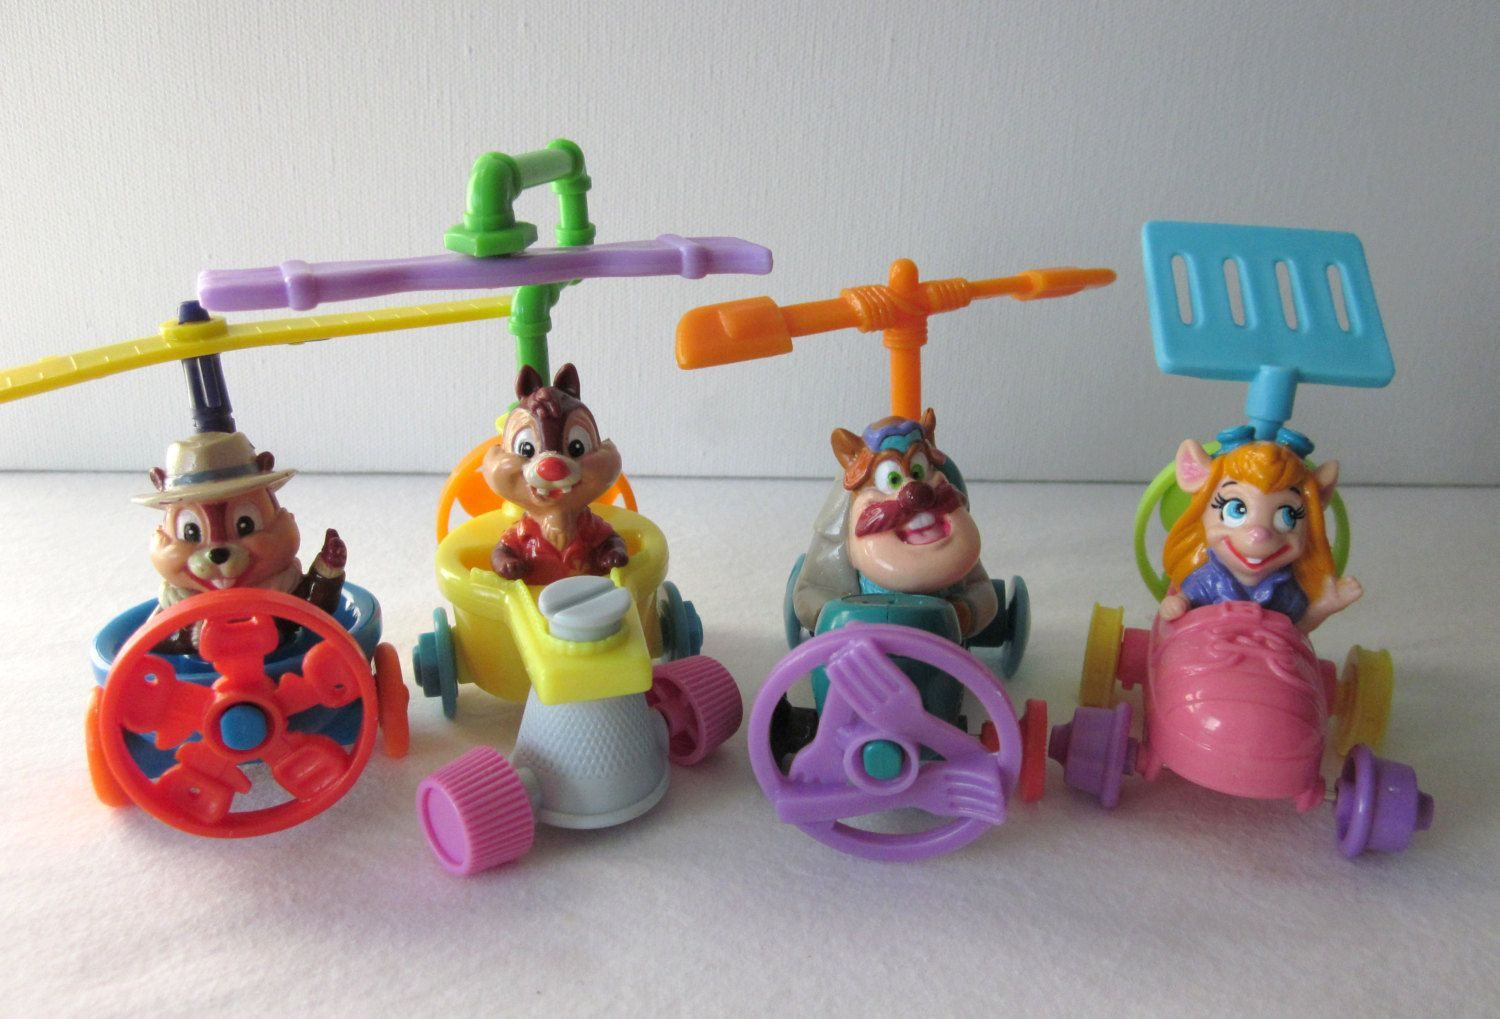 Top 10 Best McDonald's Happy Meal Toys Ever! (Part 2)